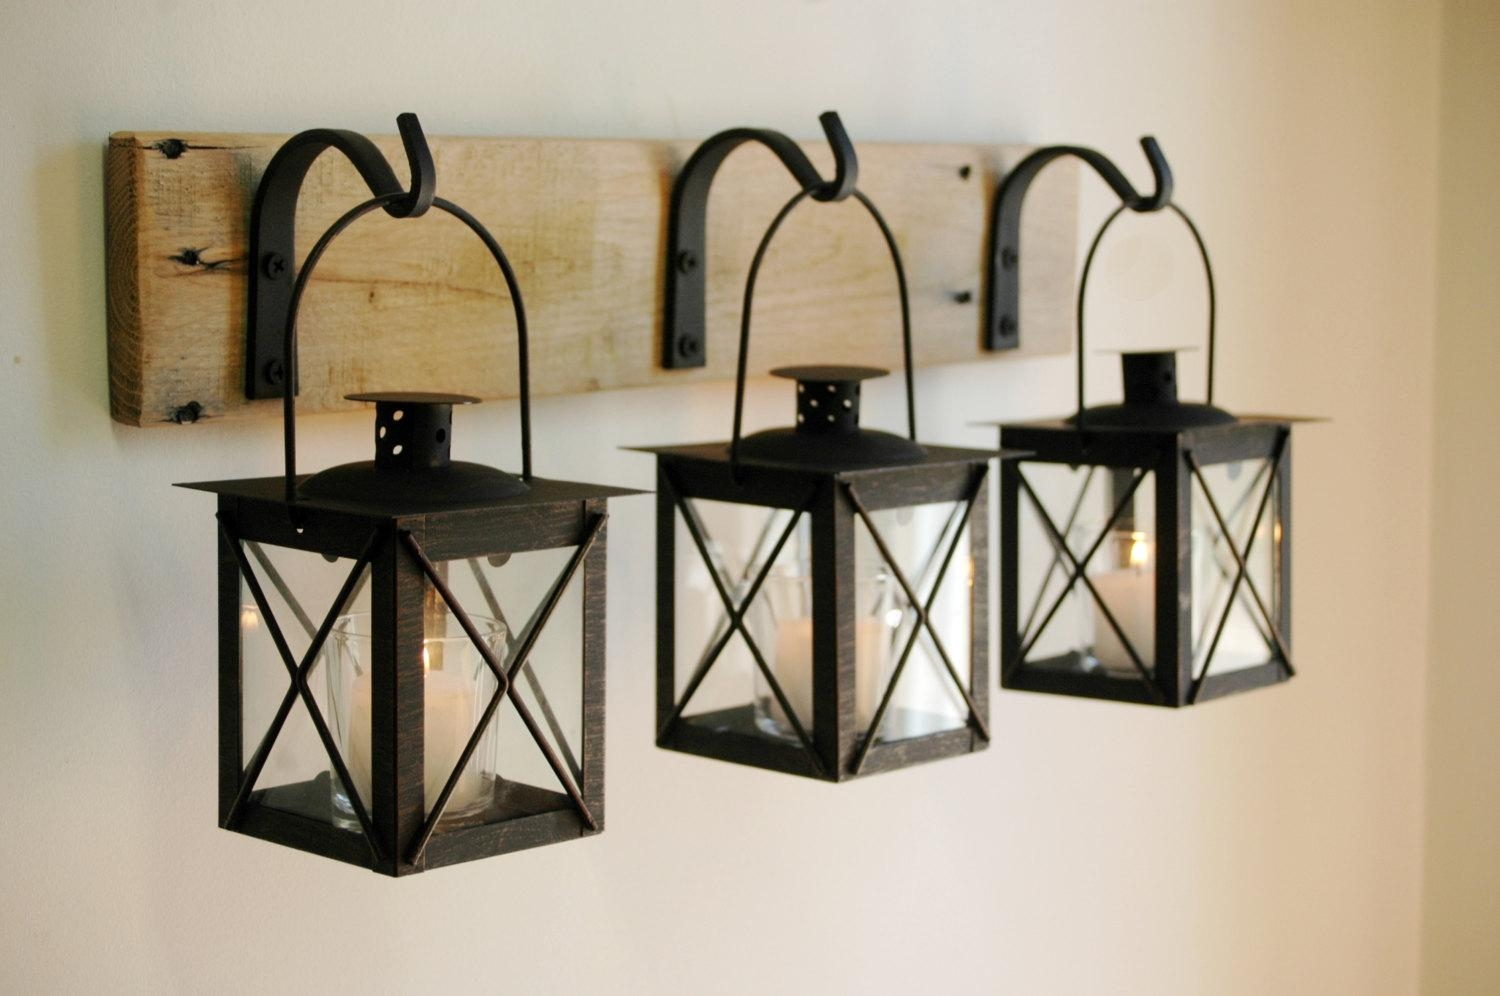 Faux Wrought Iron Wall Decor – Wrought Iron Wall Decor Ideas For Intended For Faux Wrought Iron Wall Decors (Image 10 of 20)